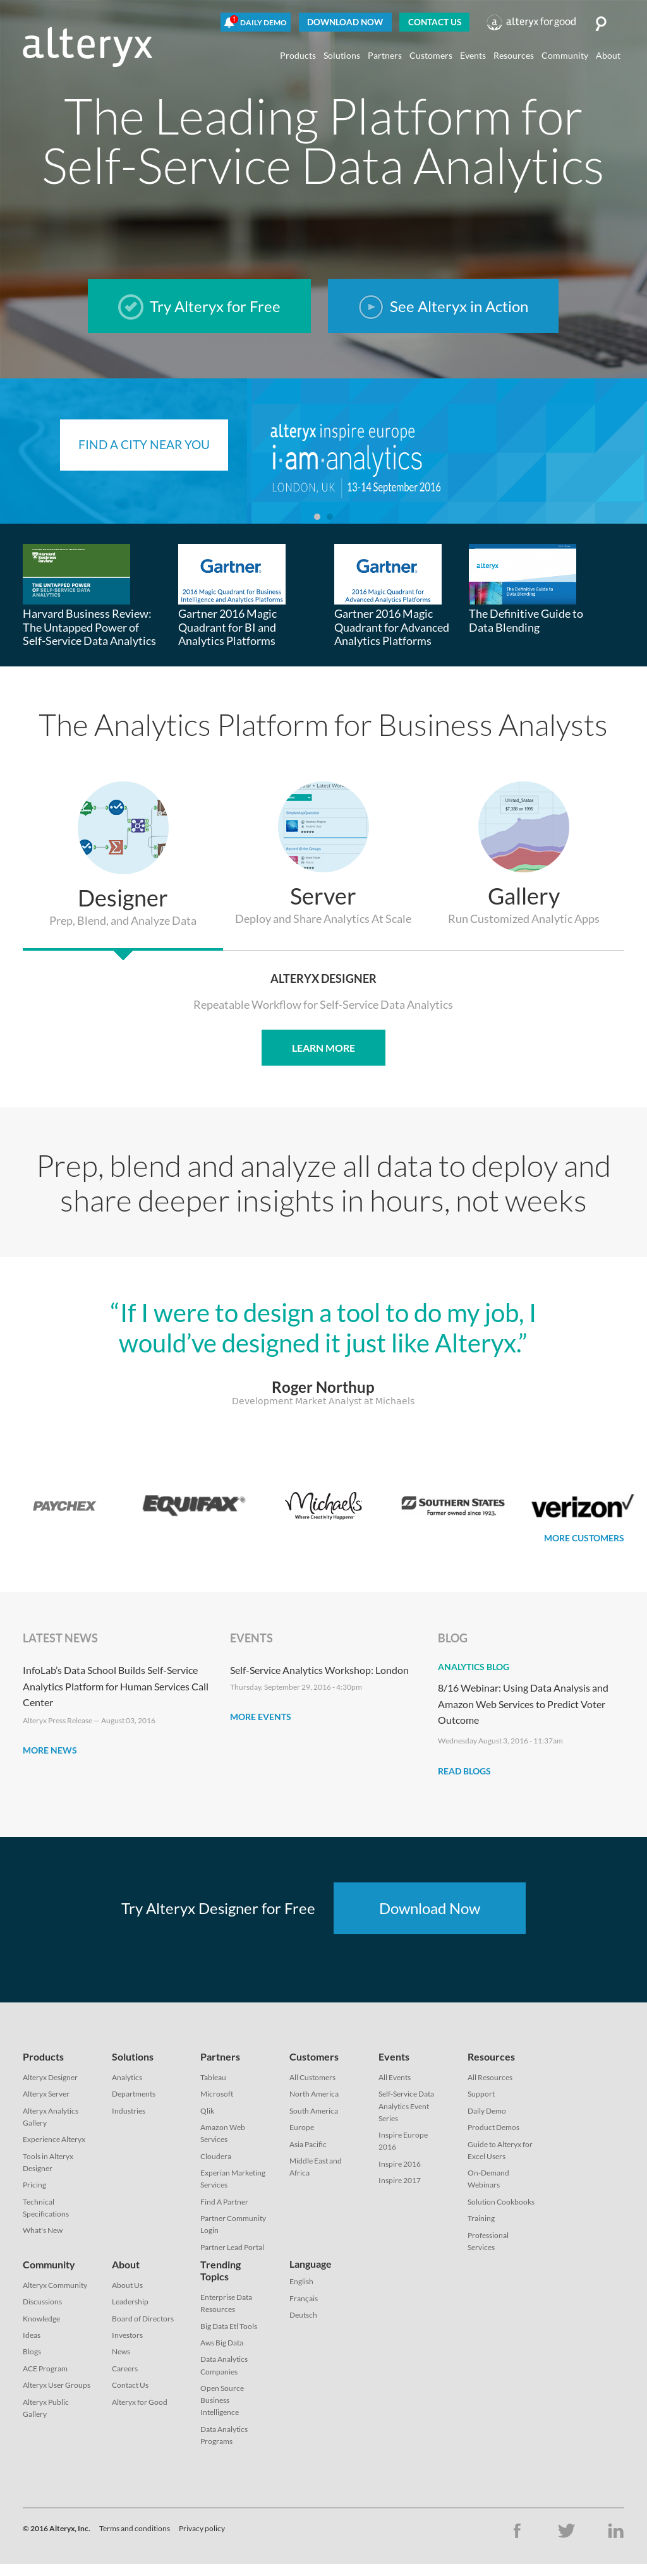 Alteryx Competitors, Revenue and Employees - Owler Company